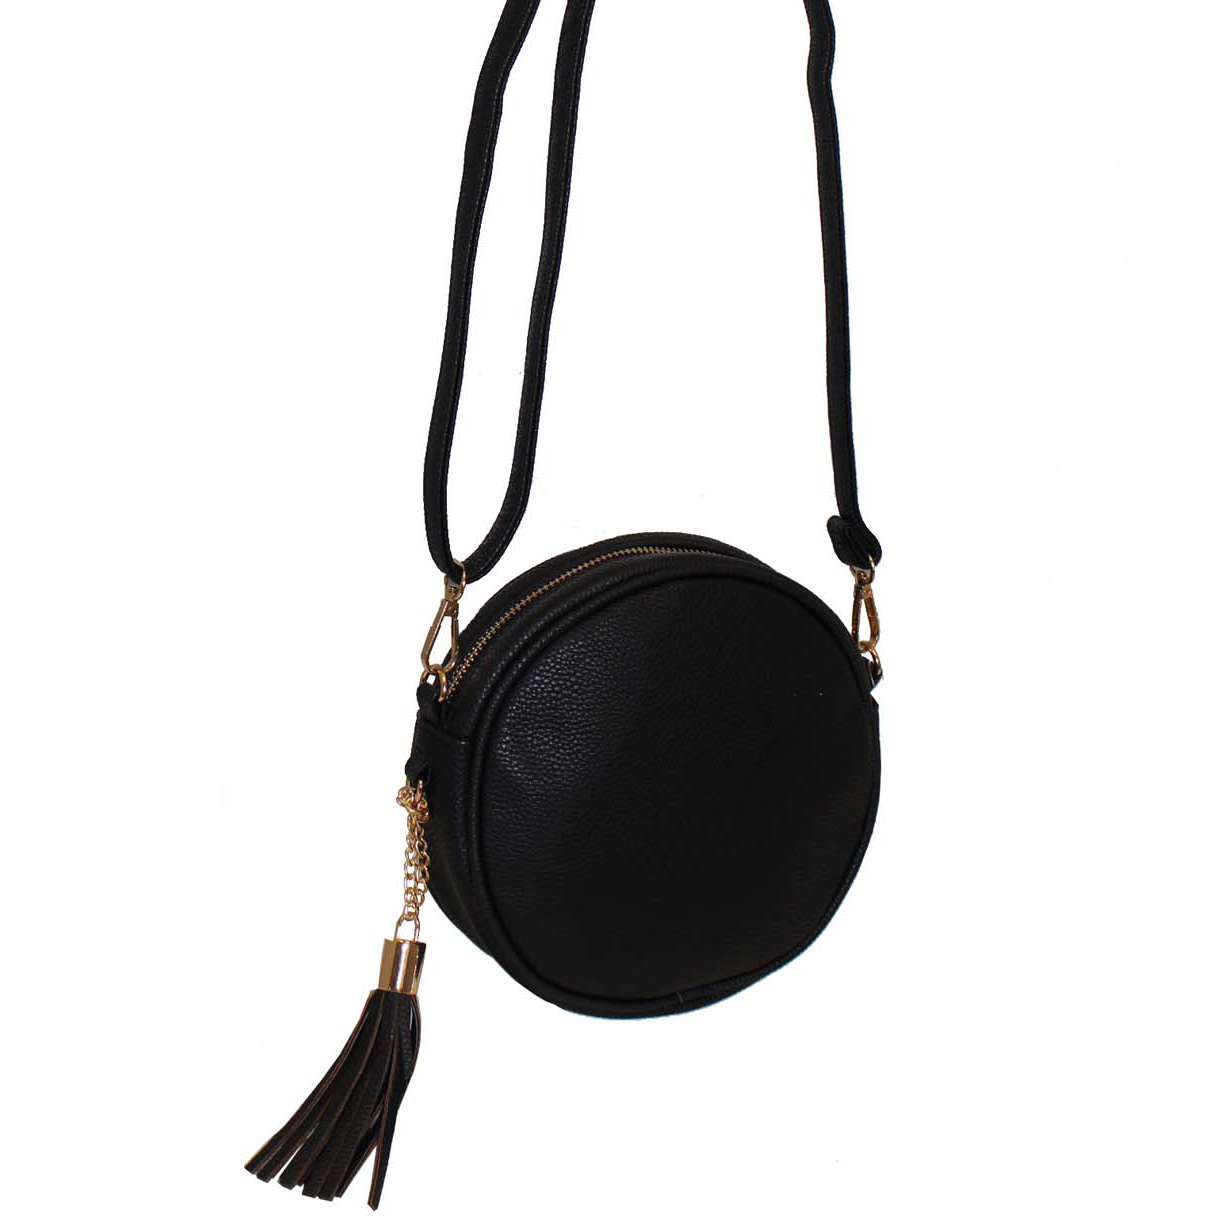 240 Black - Structured Round Handbag ~ BAGZONE - Suppliers of ...